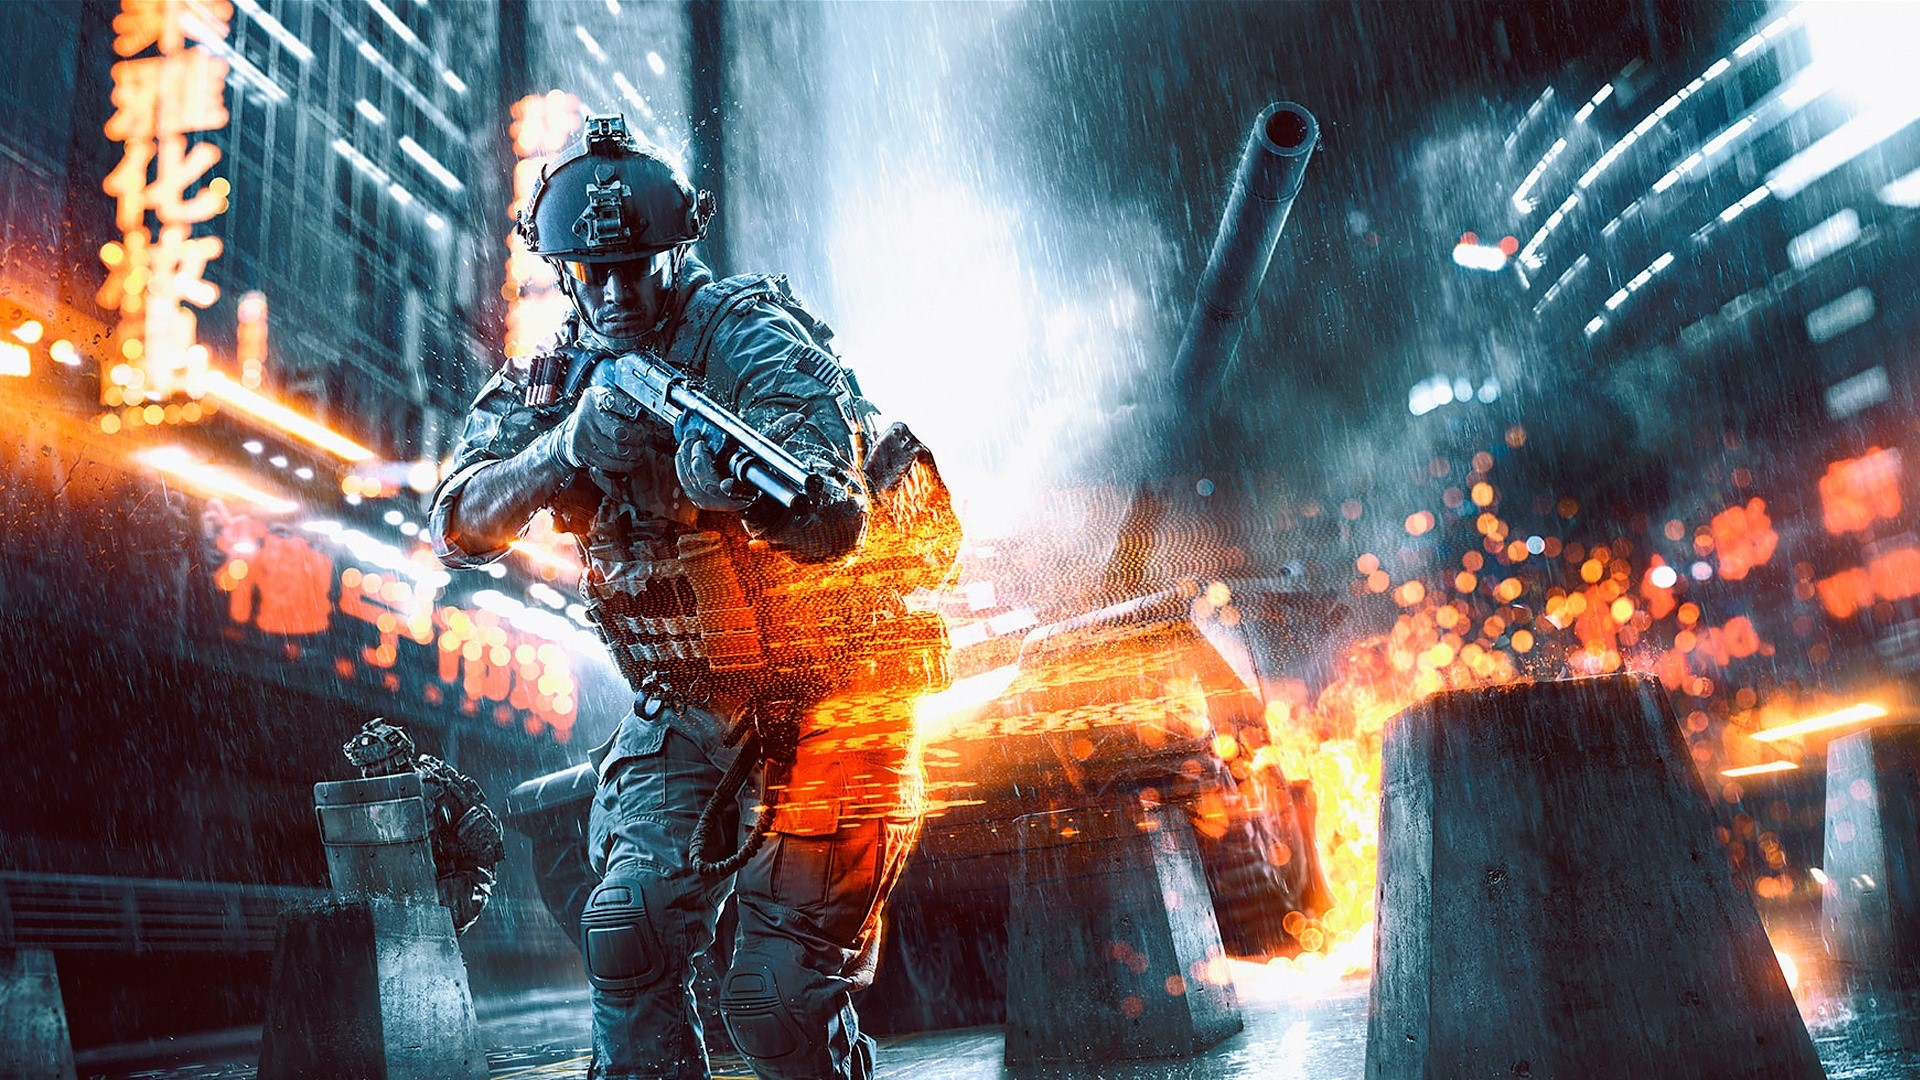 Fondos de pantalla Battlefield 4 Dragons Teeth